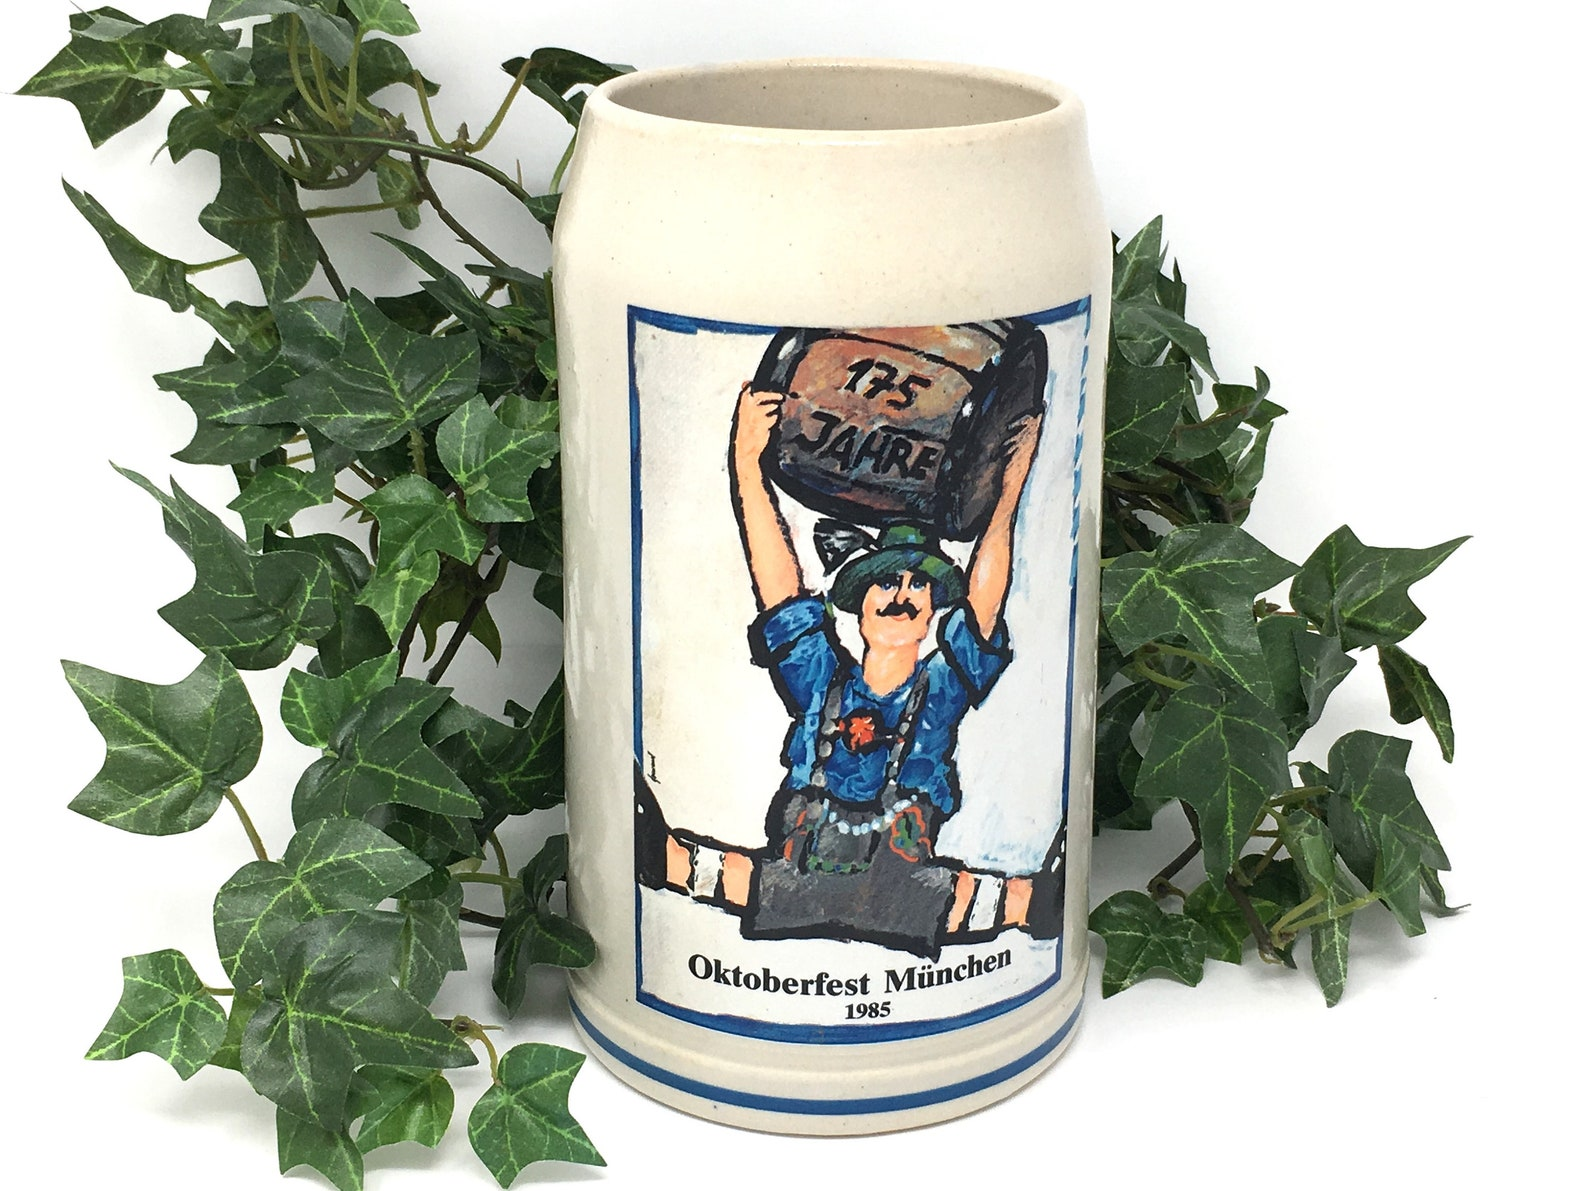 Vintage German beer stein 1985 Oktoberfest Munchen beer mug from Munich Germany tankard, man cave gift, barware decor